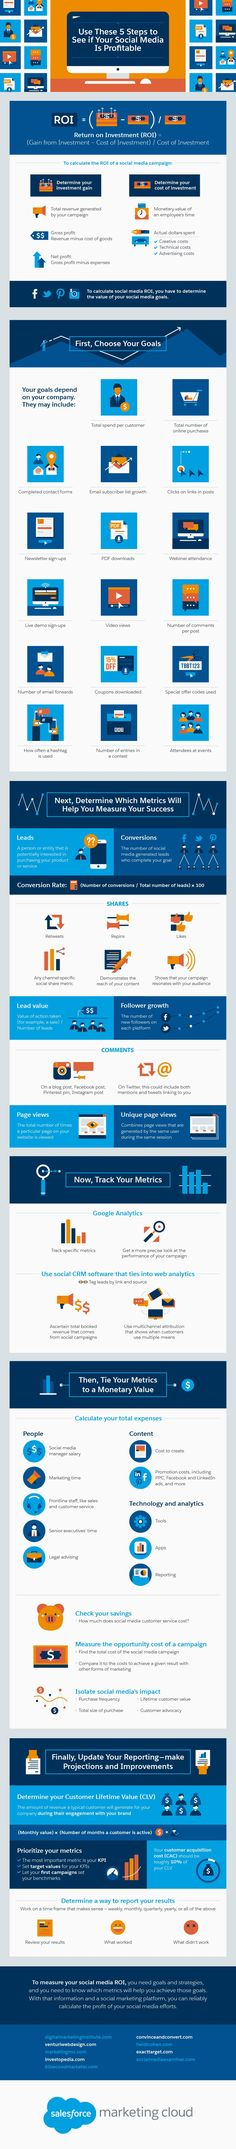 Use These 5 Steps to See if Your Social Media is Profitable - #infographic